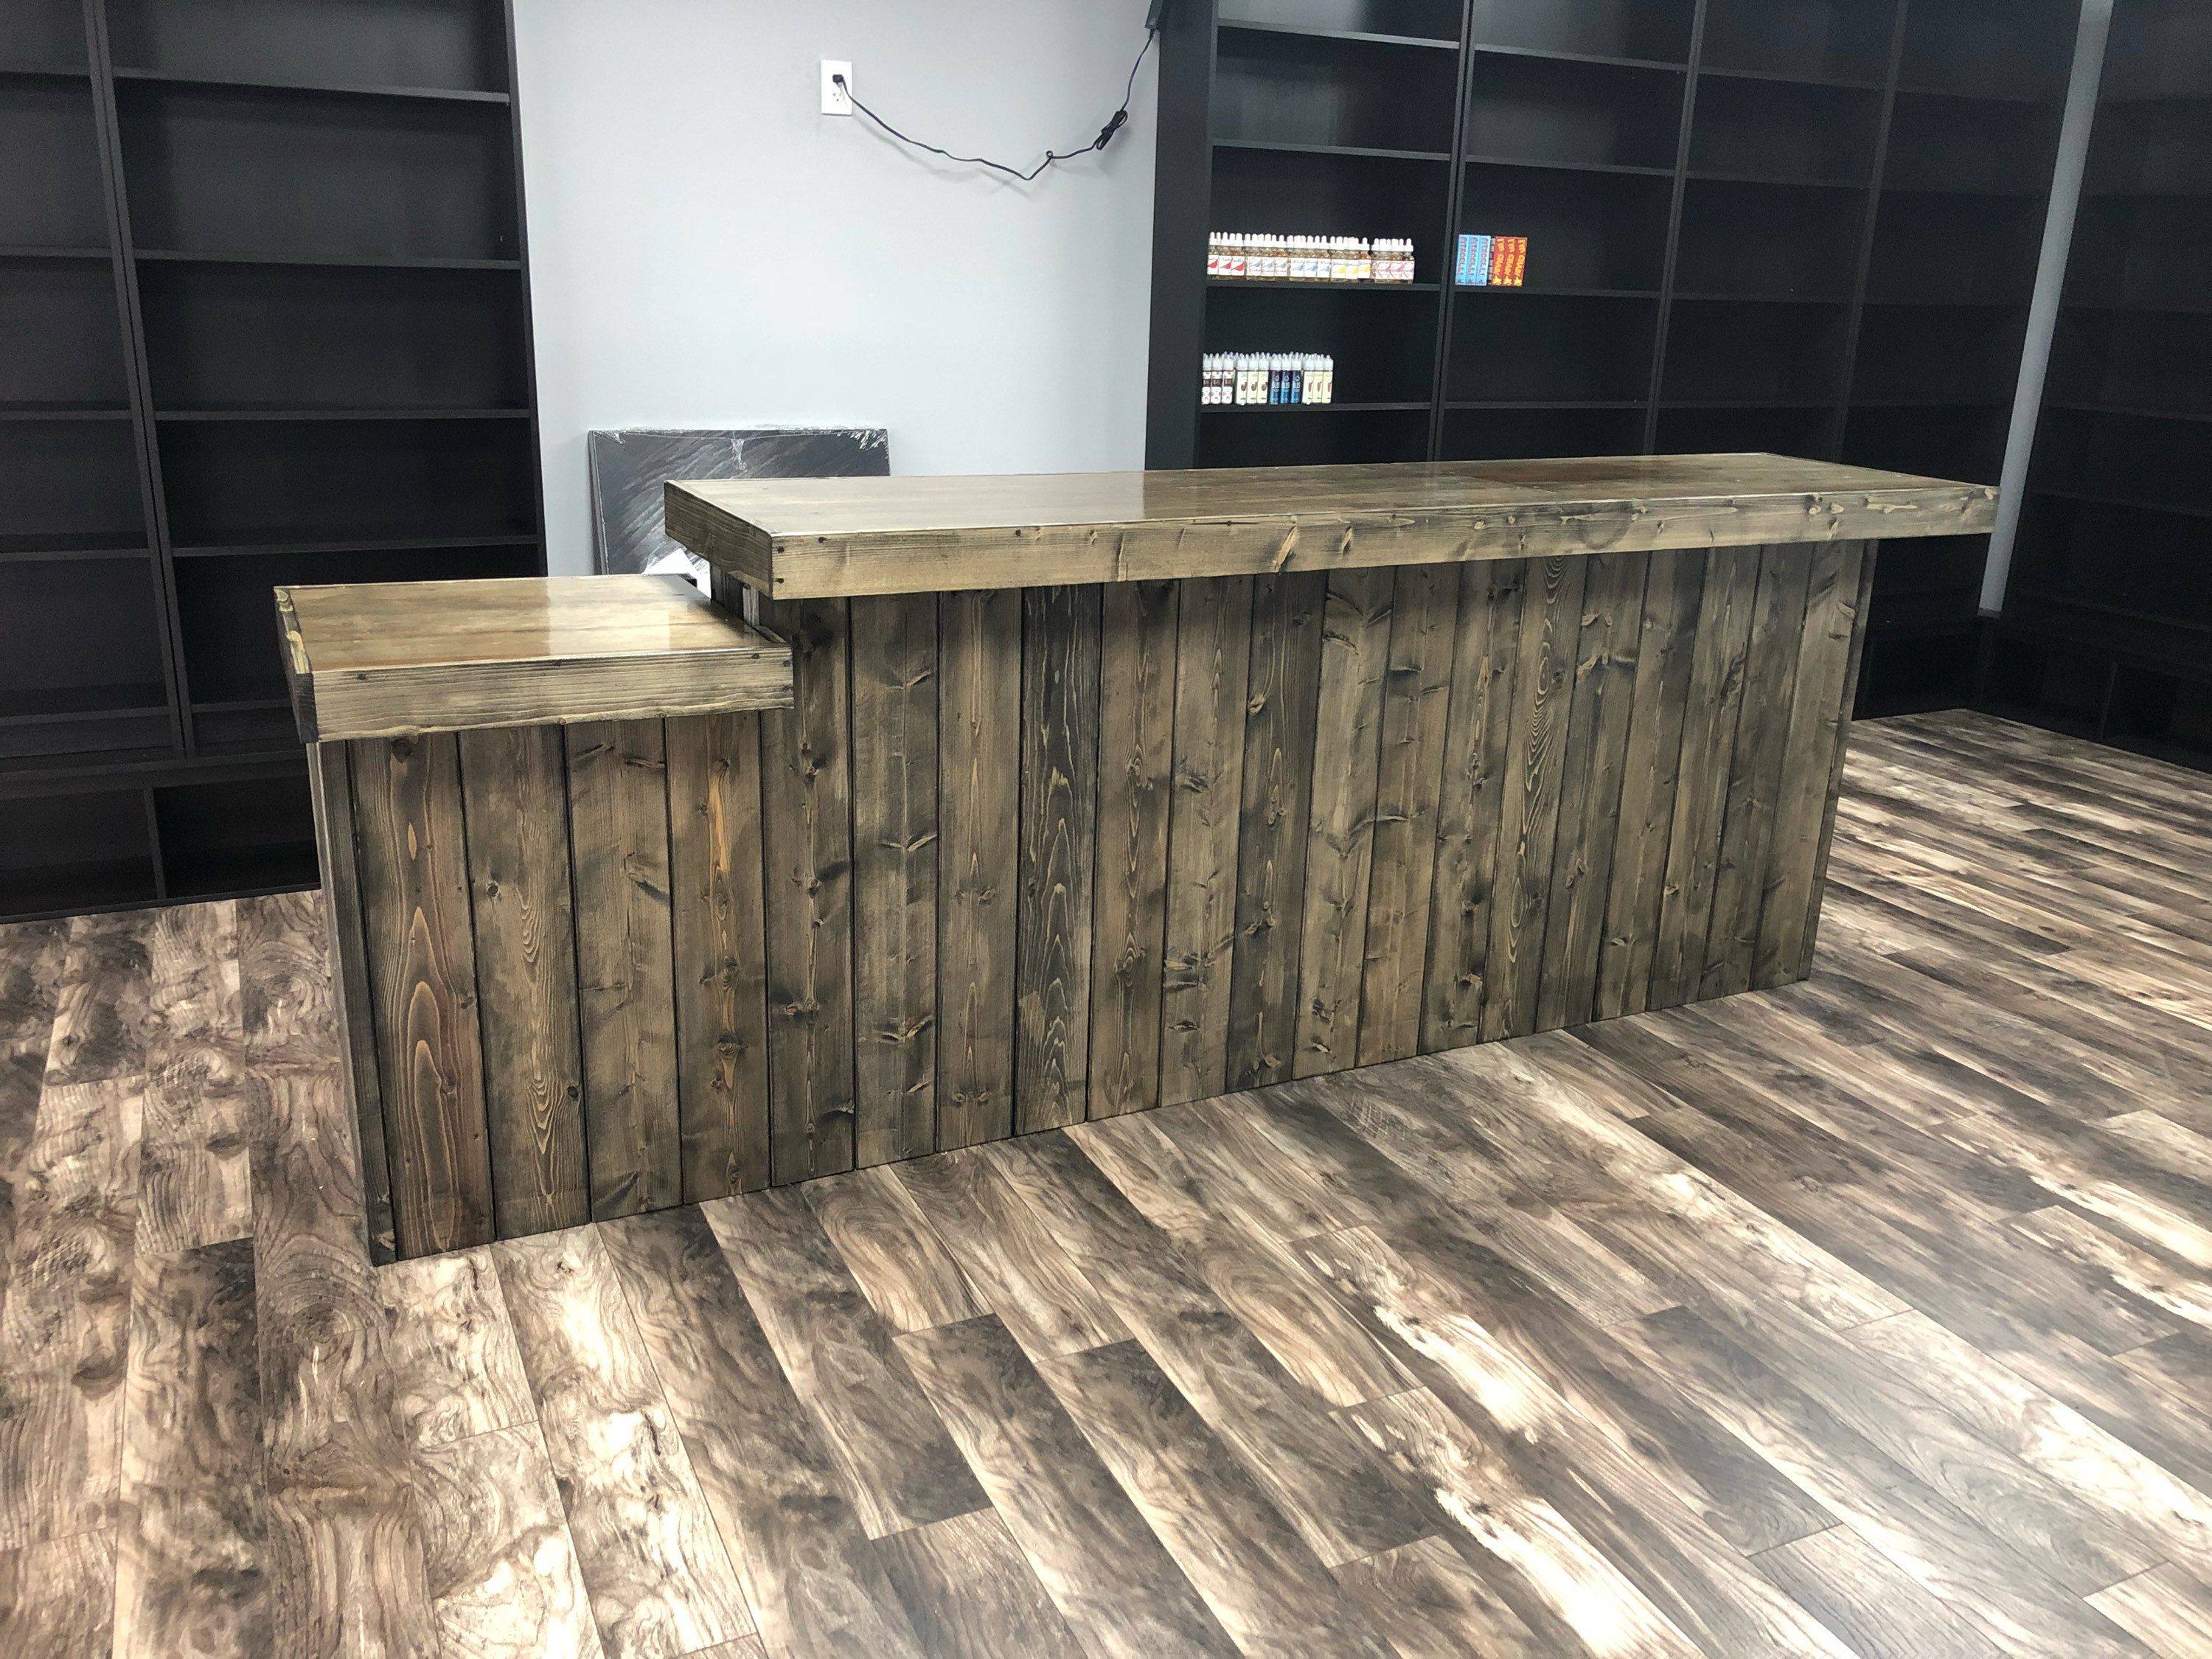 Sale Counter Design The Ebony Drop 10 39 Rustic Barn Wood Or Pallet Look